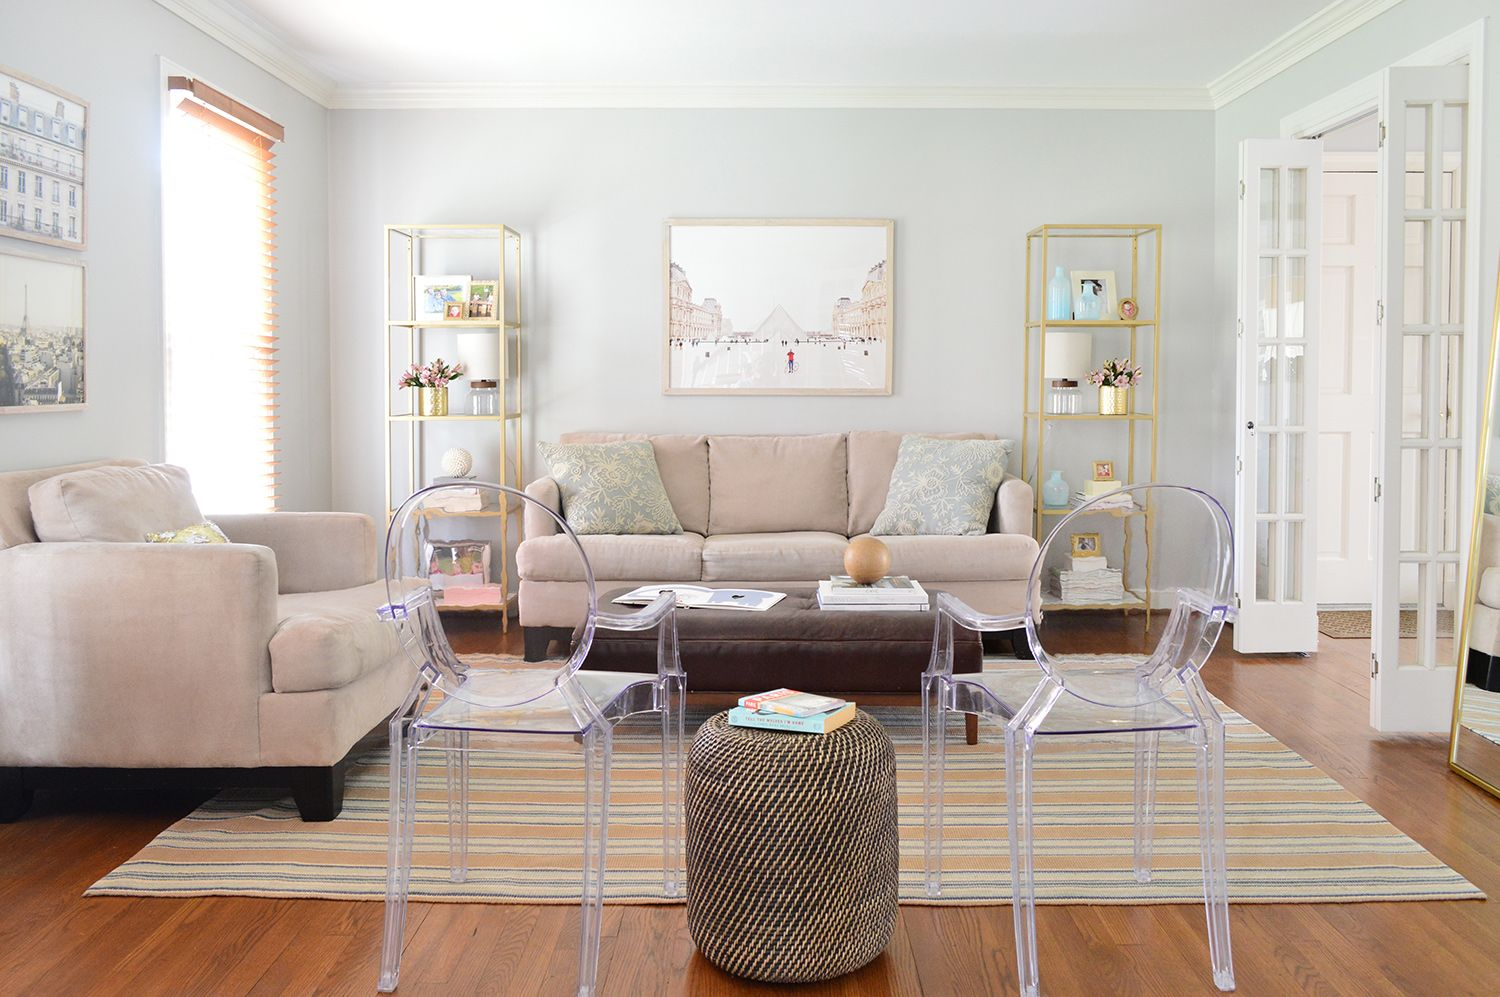 Easy Makeover Taking A Neutral Living Room From Plain To Polished Young House Love Neutral Living Room Living Room Makeover Living Room Decor